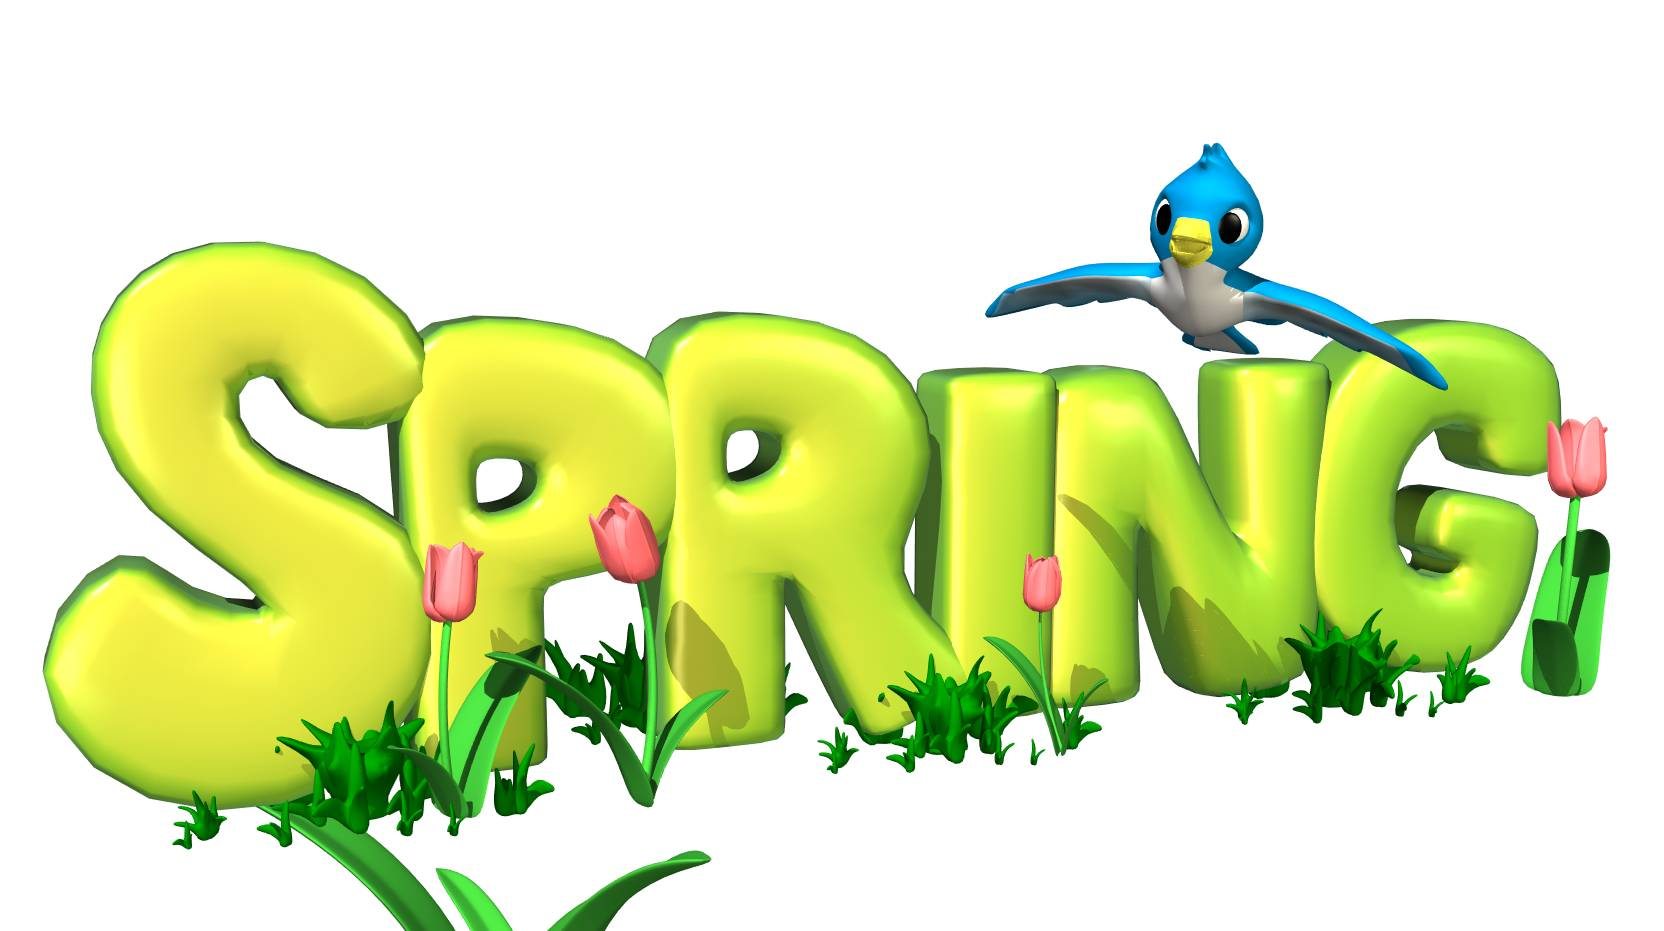 Spring flowers border clipart free clipa-Spring flowers border clipart free clipart image-10